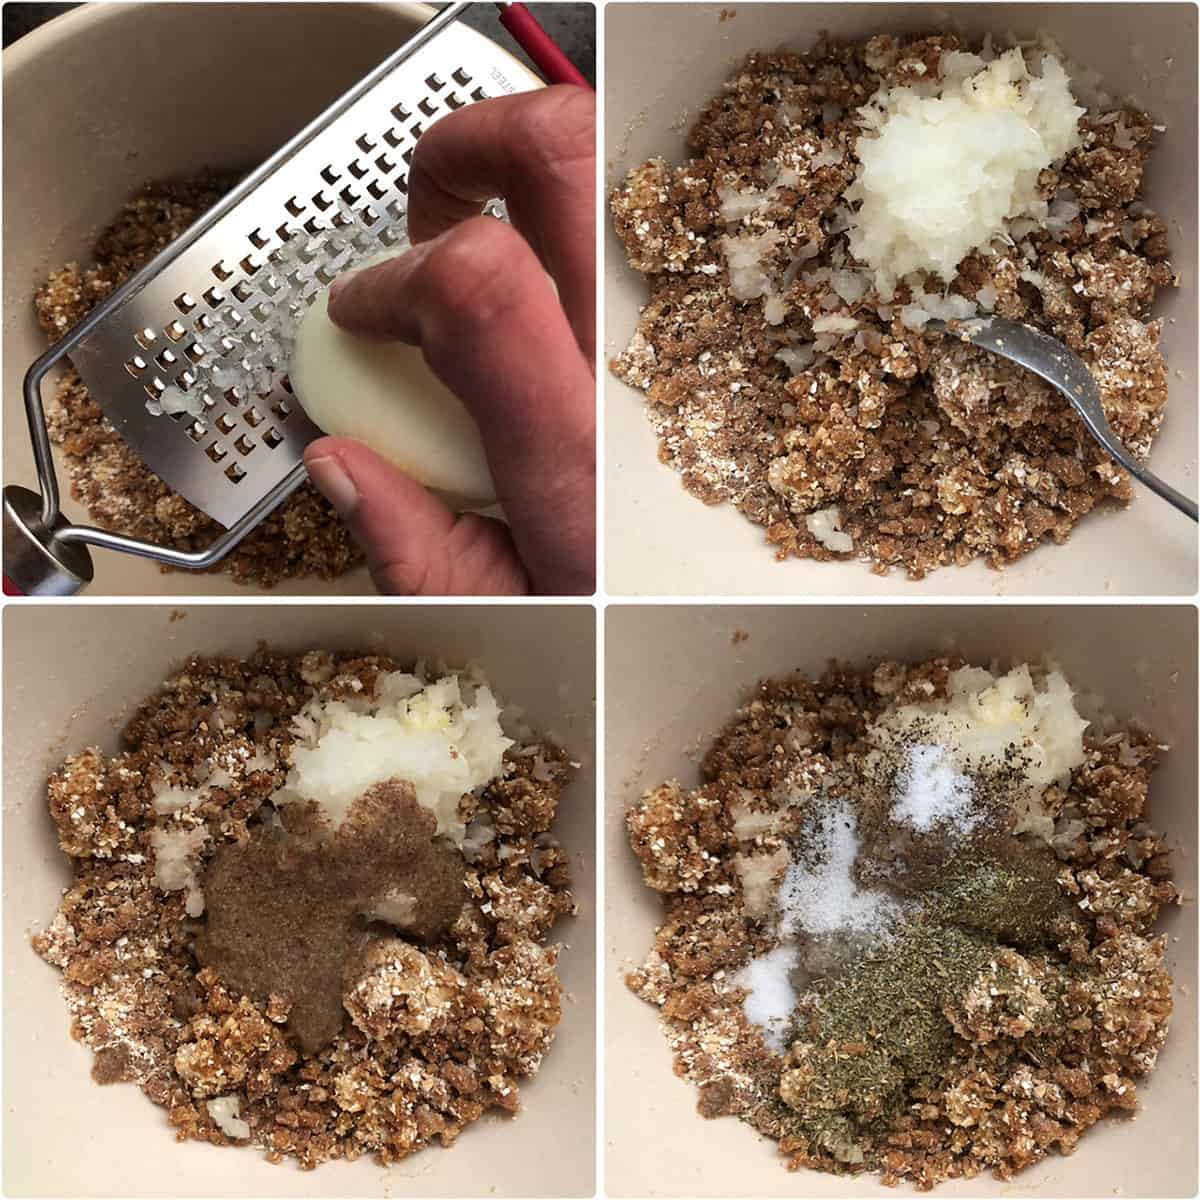 Onion grated into the bowl, addition of flaxseed meal, herbs, salt and pepper